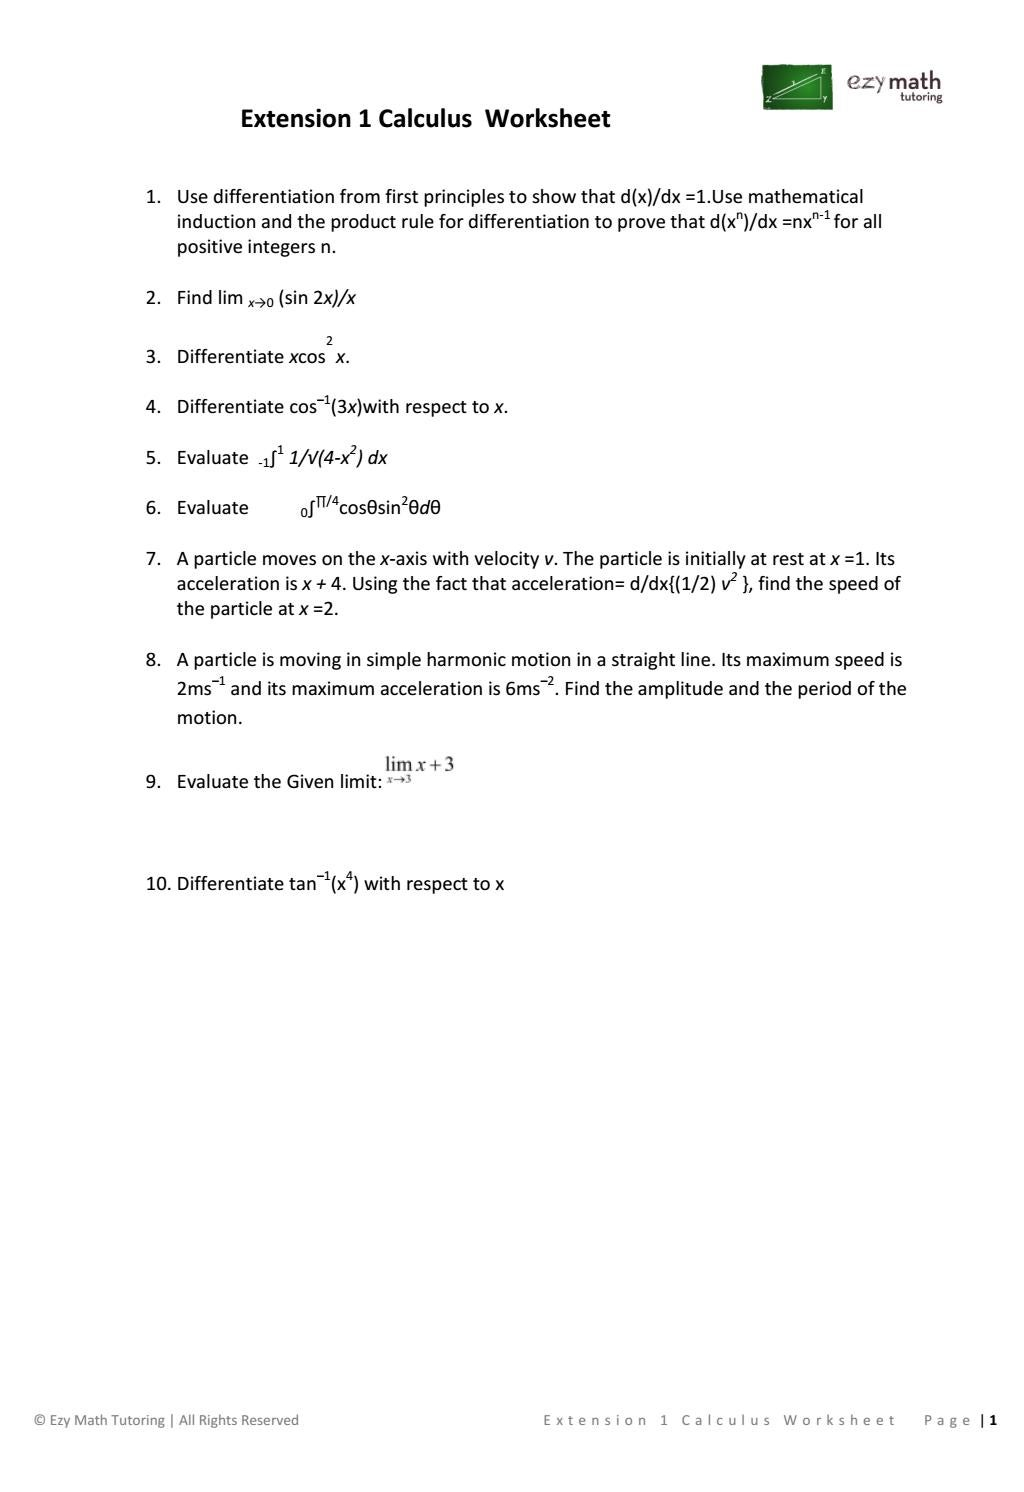 Extension 1 calculus worksheet by ezymathtutoring - issuu